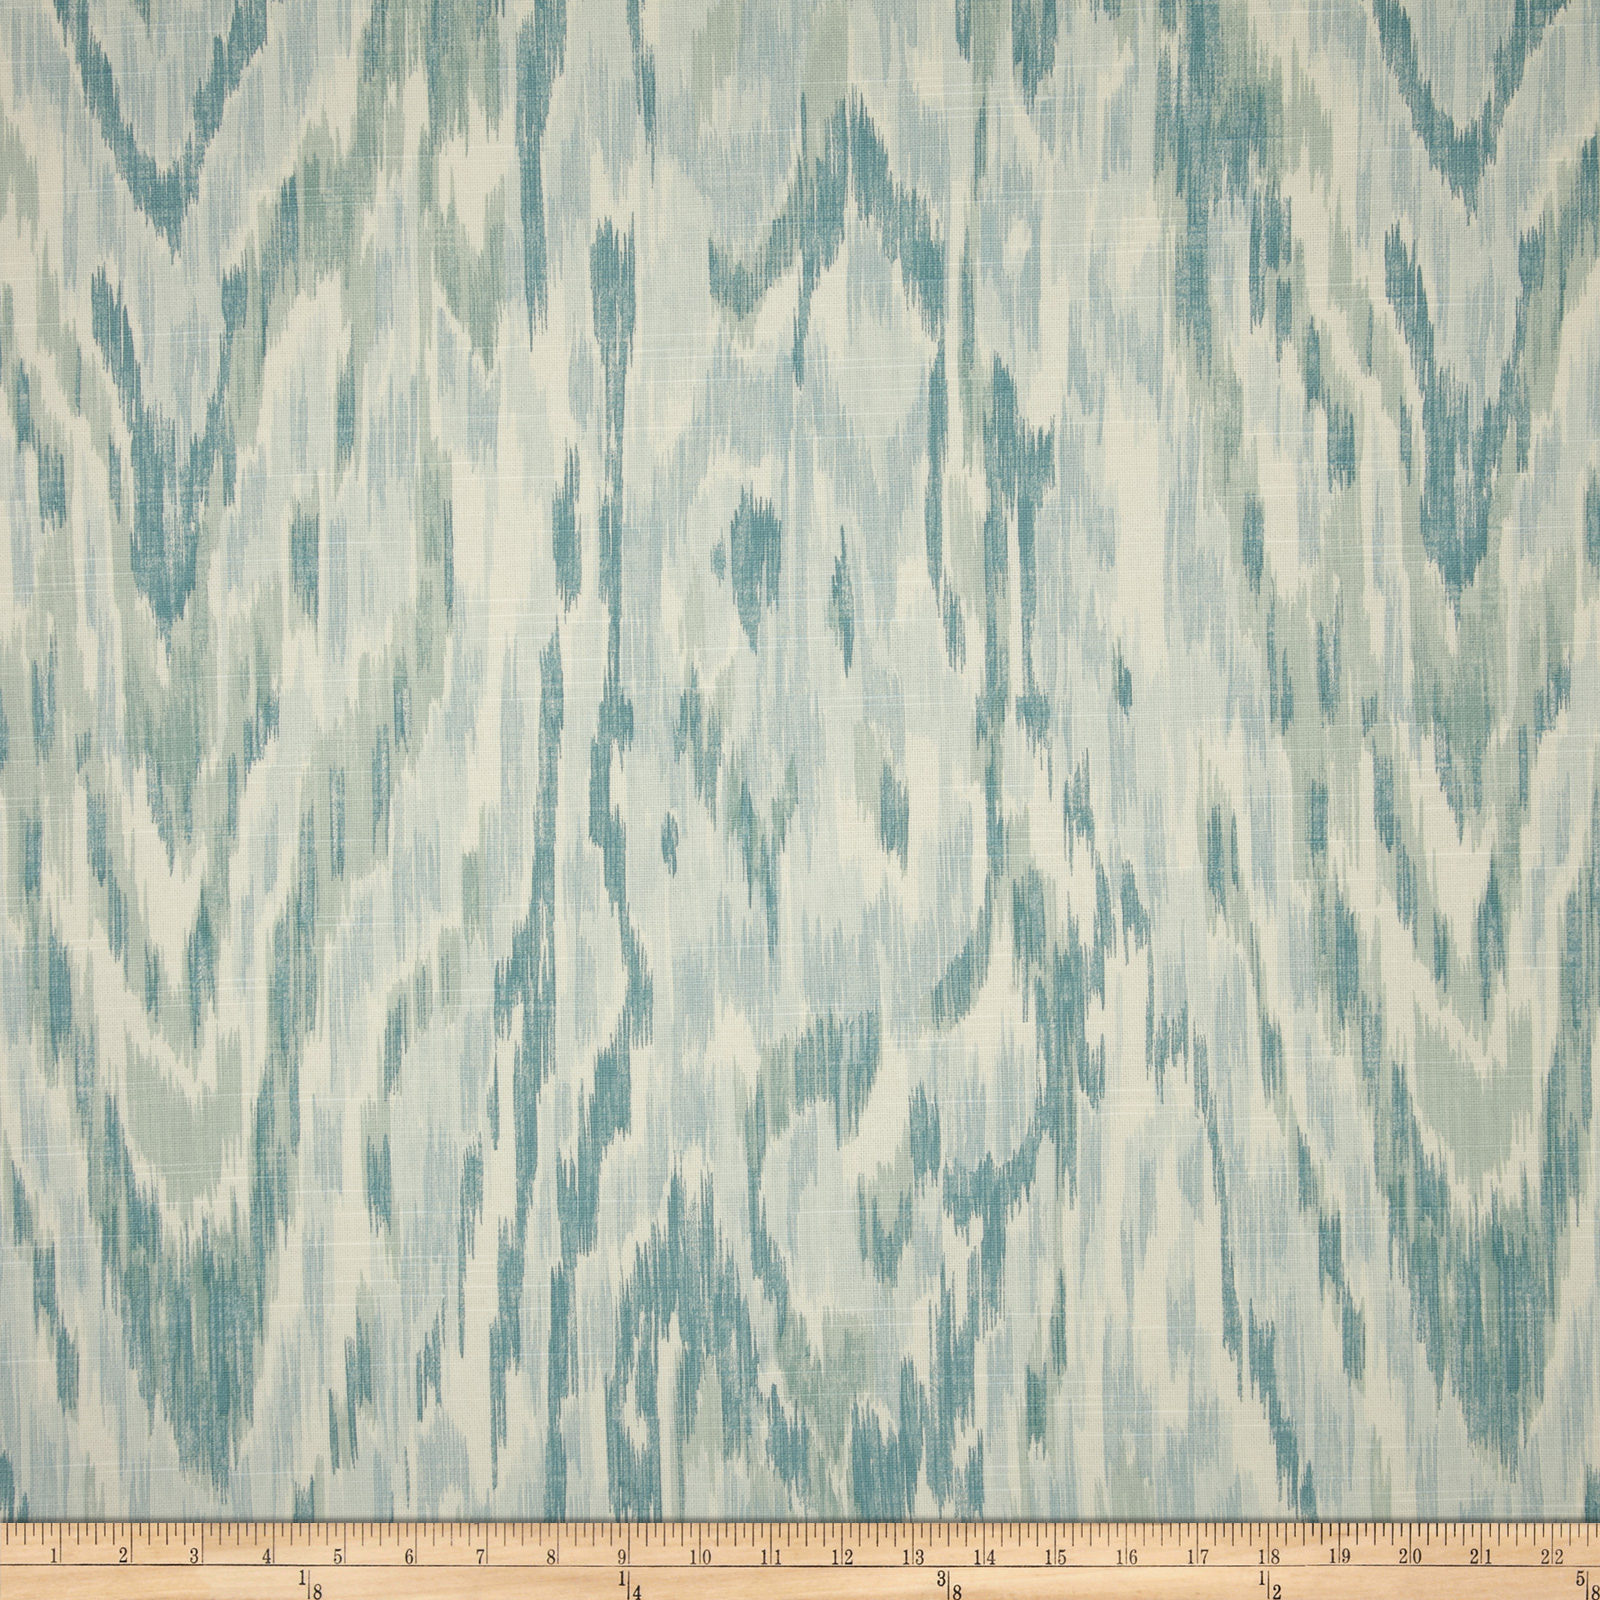 Home Accents Khartoum Ikat Slub Smokey Aqua Fabric